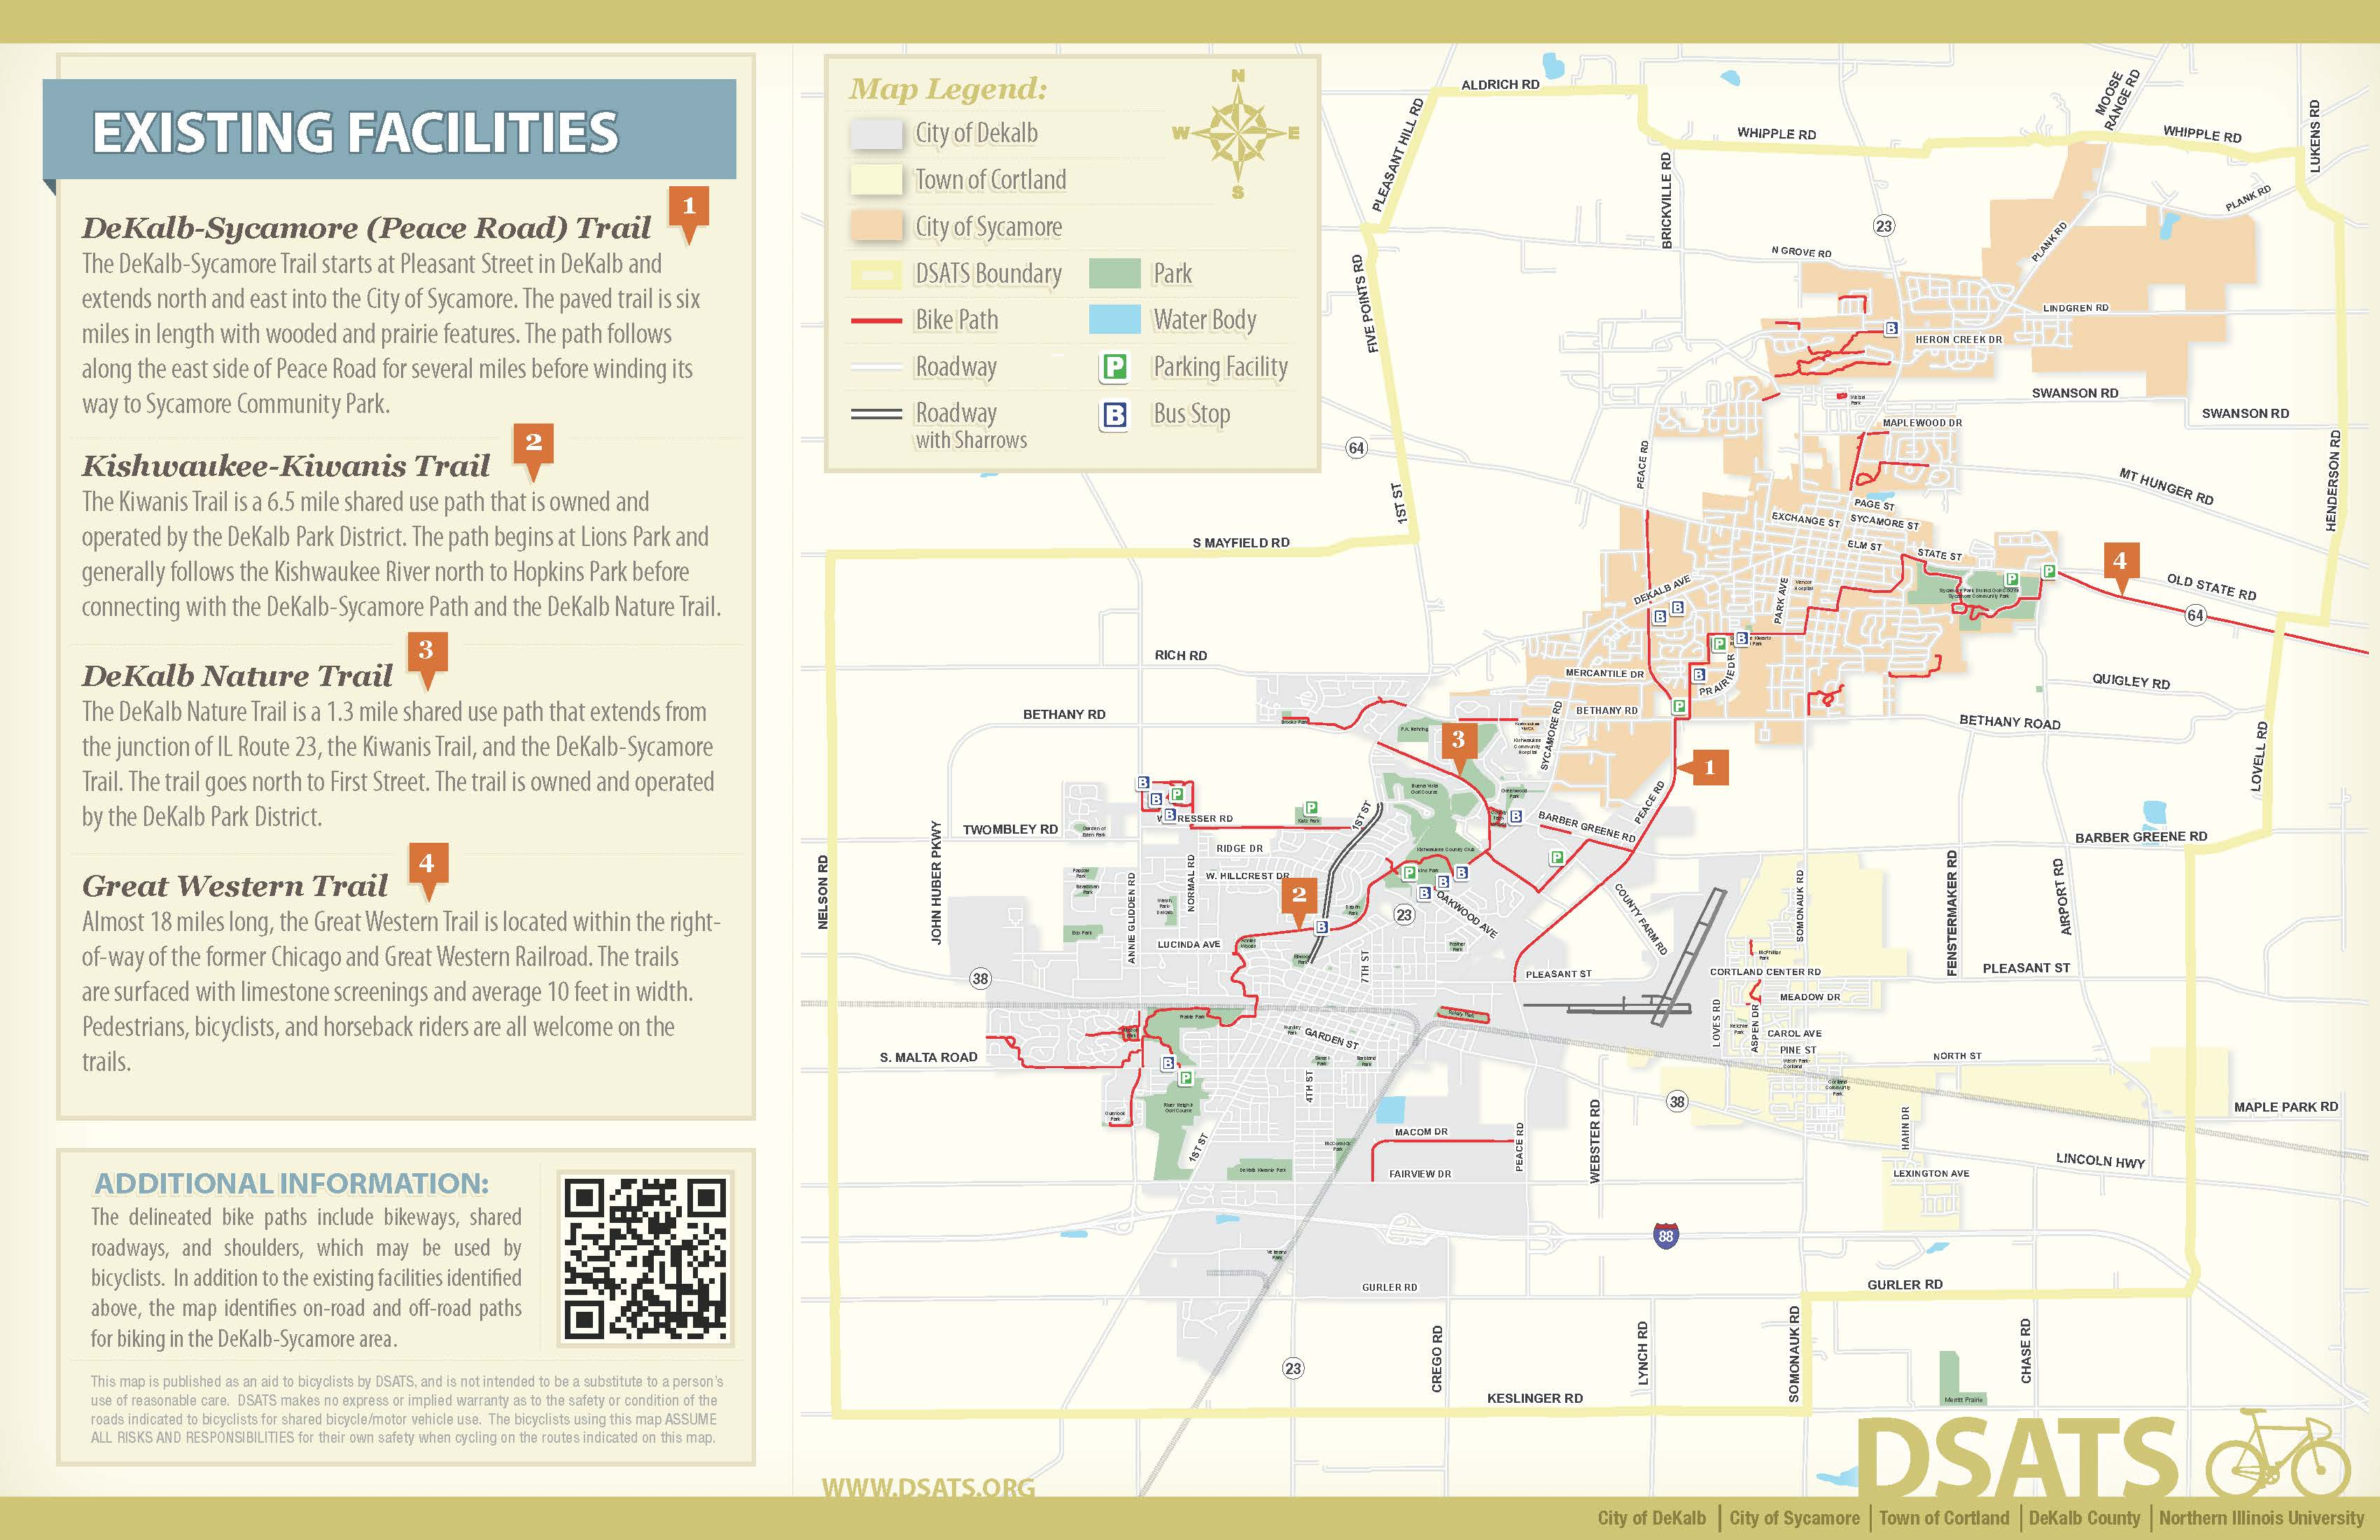 2011 DeKalb Region Trail Map - Page 2